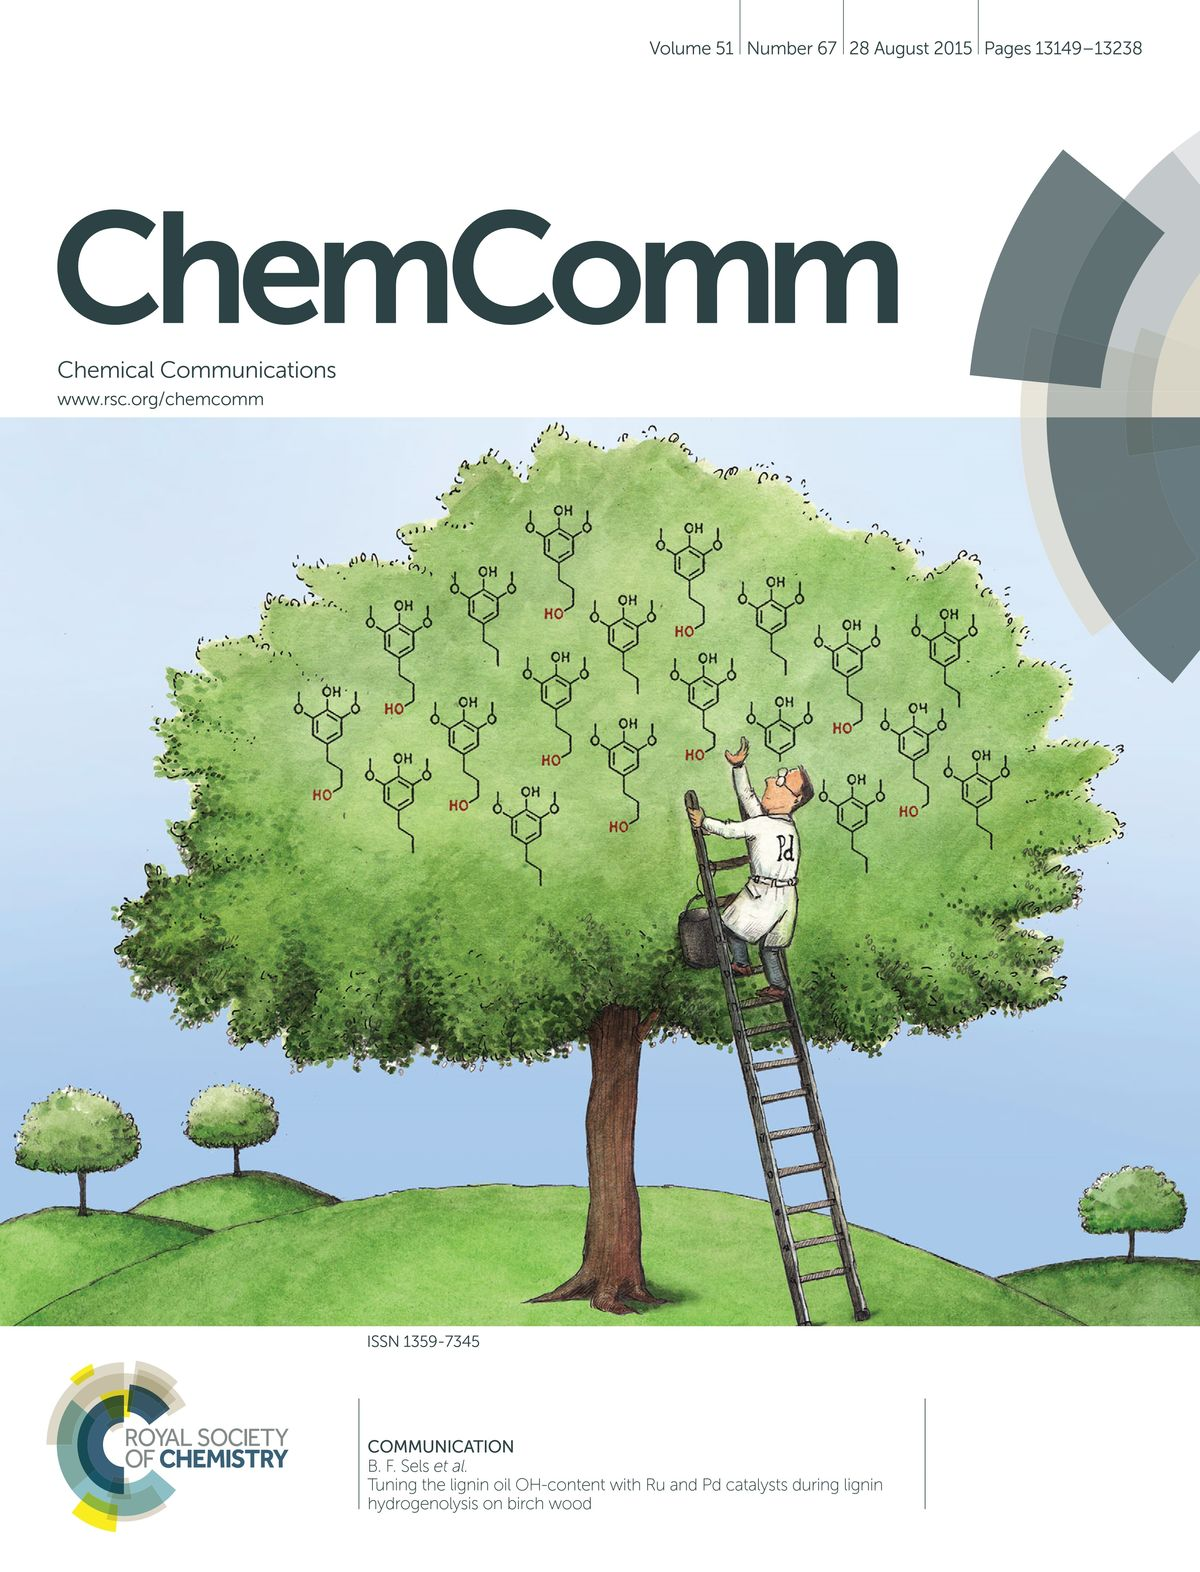 Tuning the lignin oil OH-content with Ru and Pd catalysts during lignin hydrogenolysis on birch wood